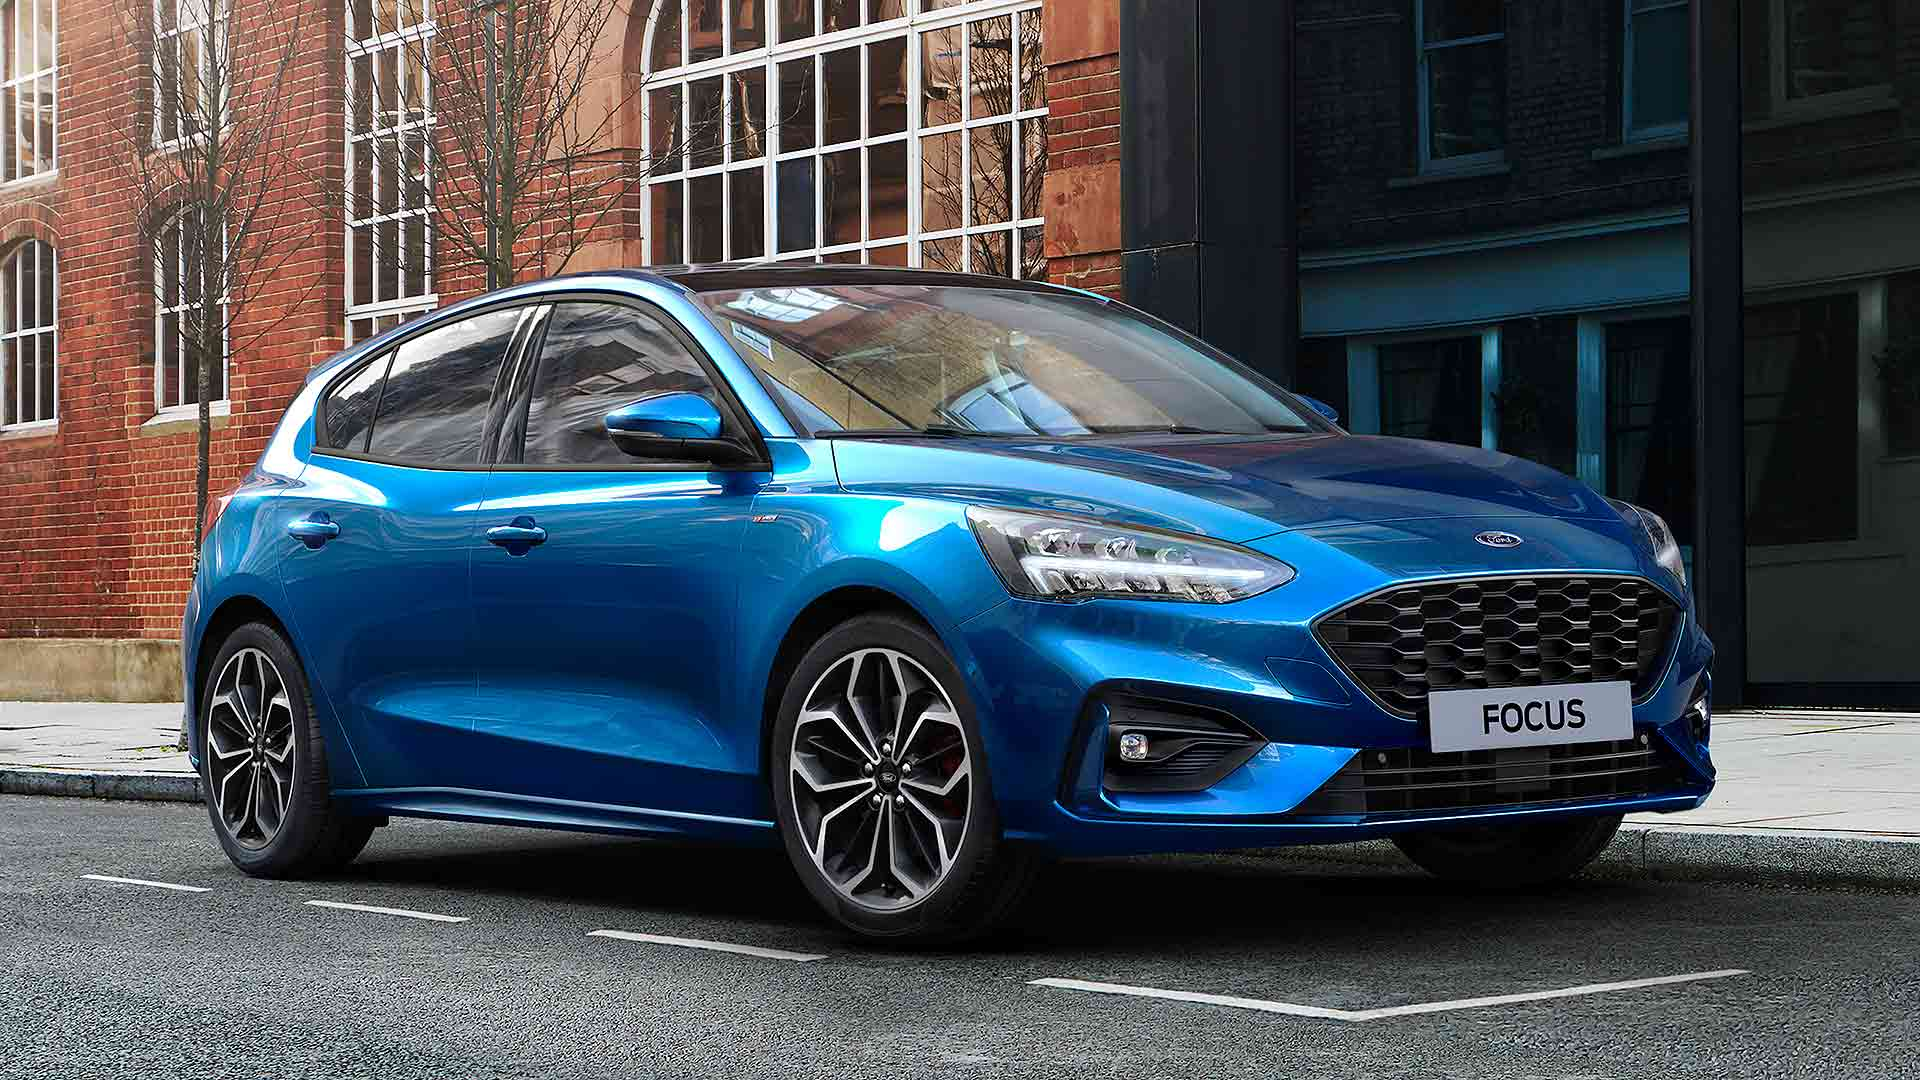 2020 Ford Focus Ecoboost Hybrid in blue